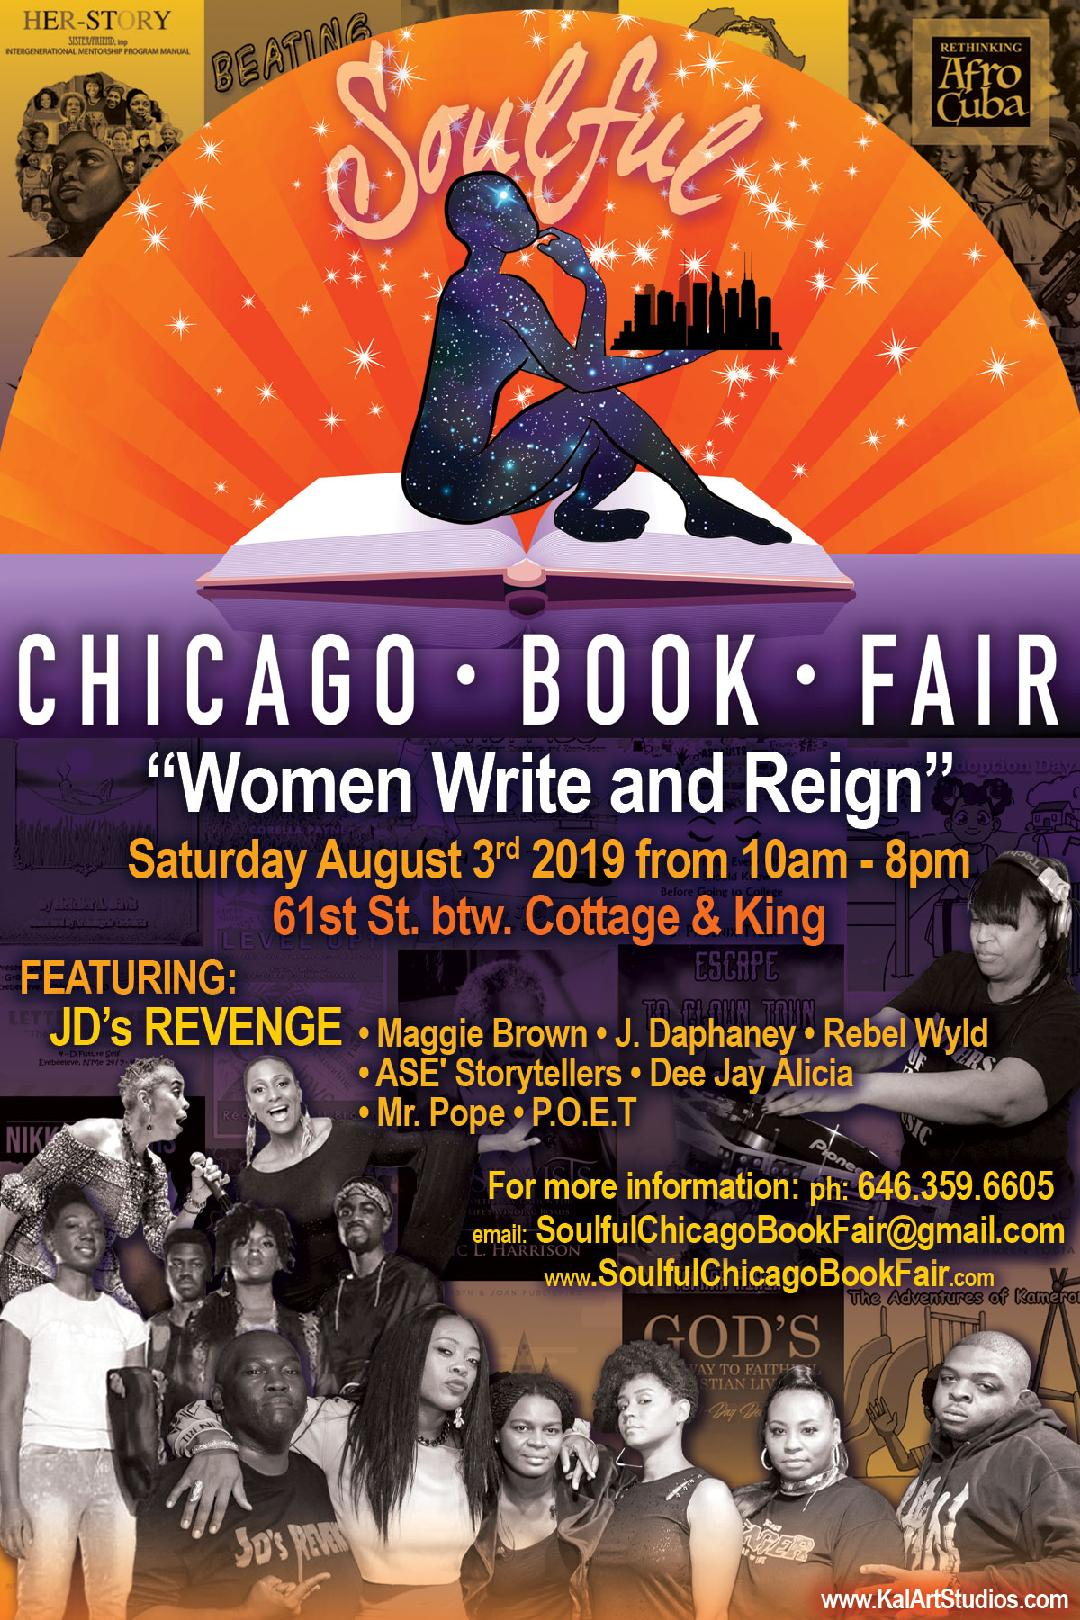 If you're not going to Lolla, give the Soulful Chicago Book Fair a Holla!